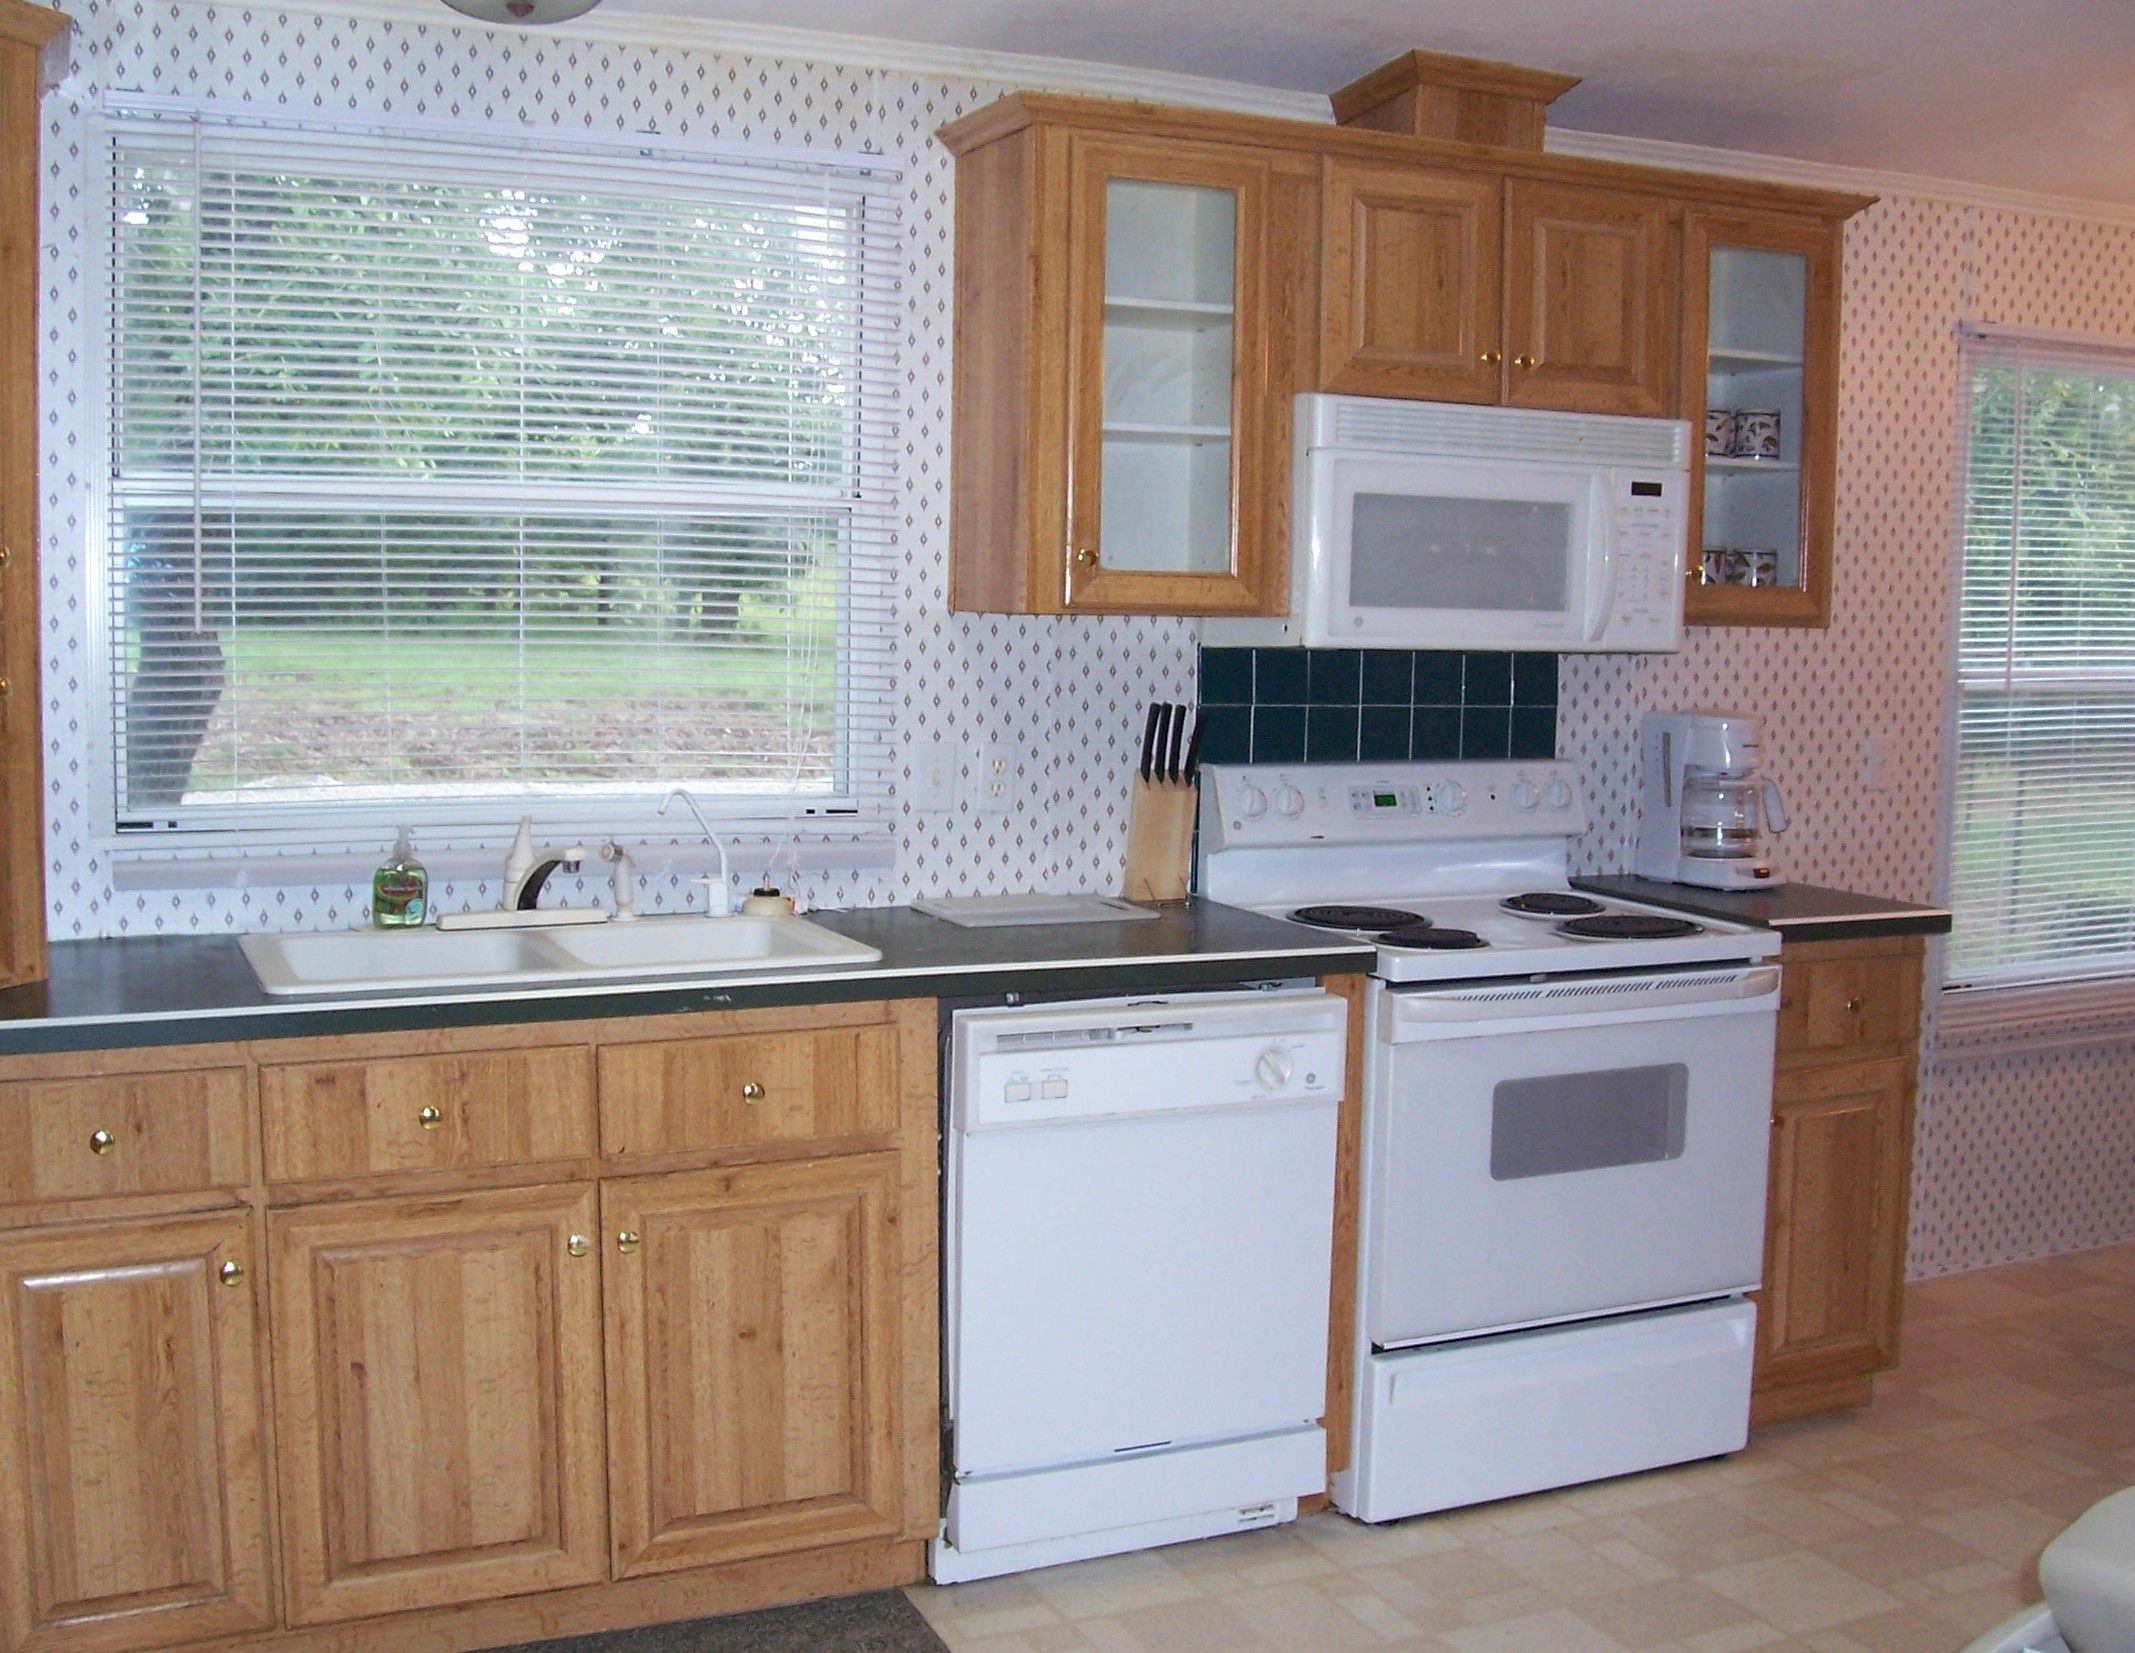 Dishwasher Next To Stove For The Home Pinterest